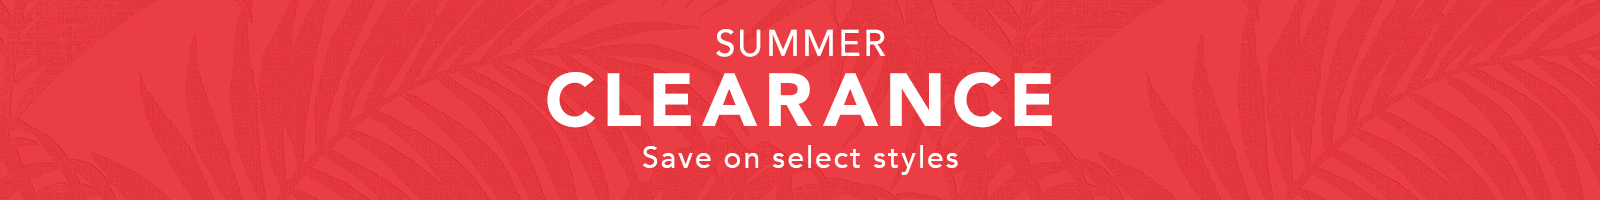 Summer Clearance Event: Save on Select Styles